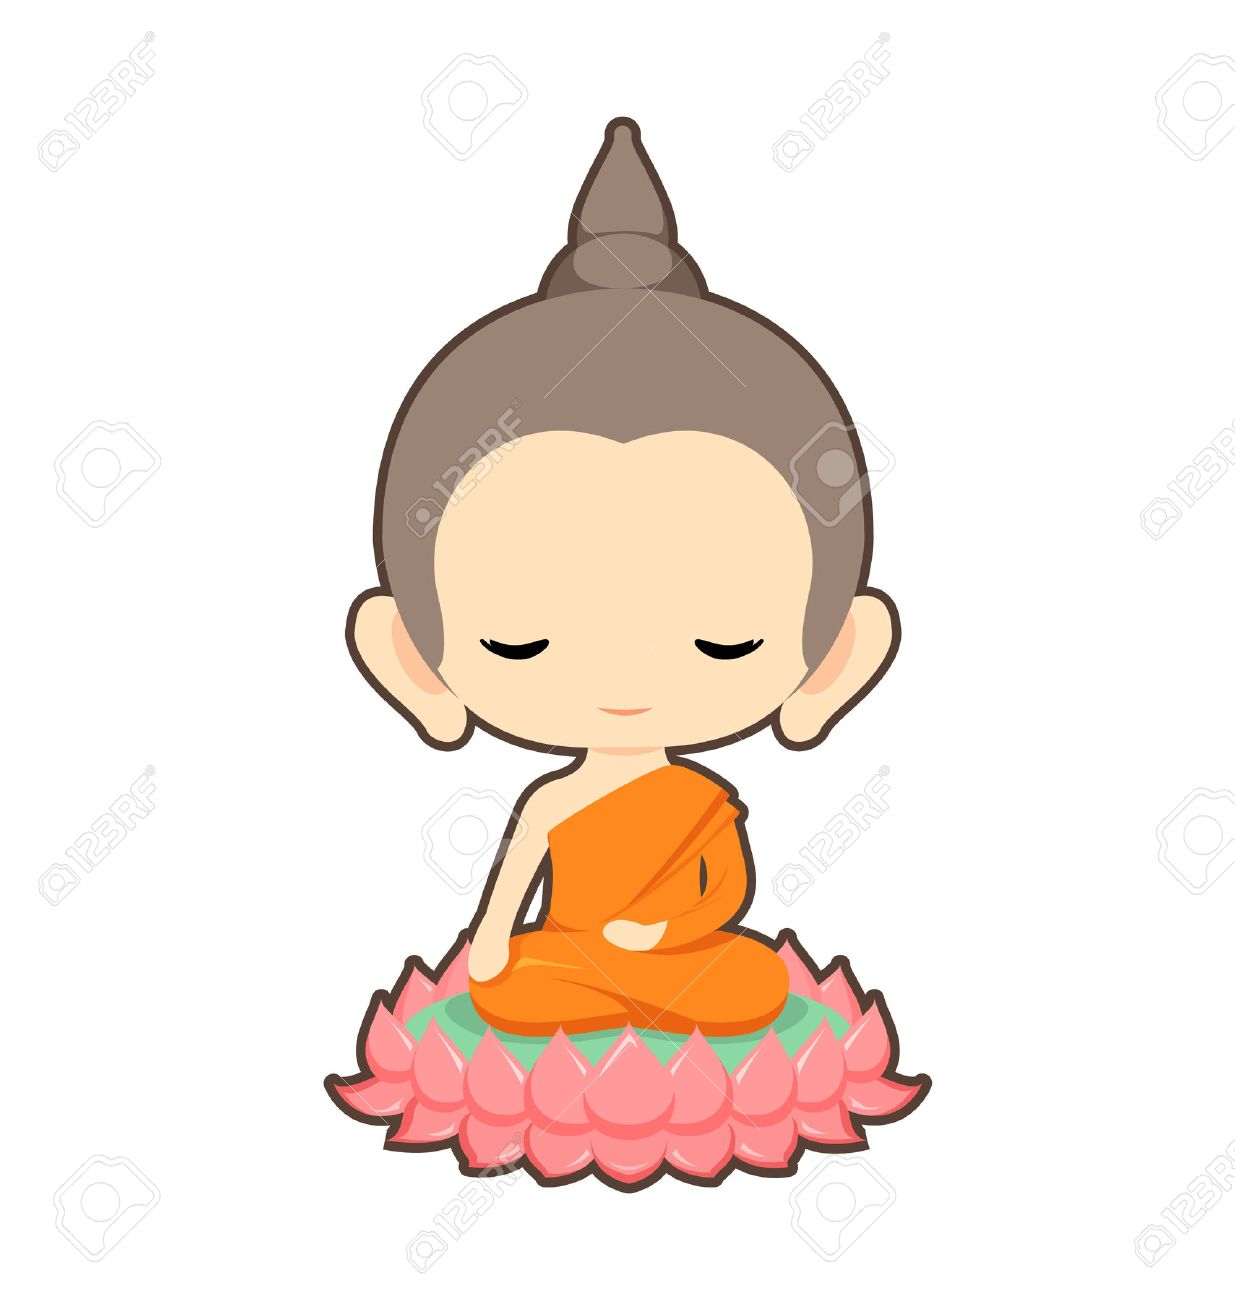 3,910 Monk Stock Vector Illustration And Royalty Free Monk Clipart